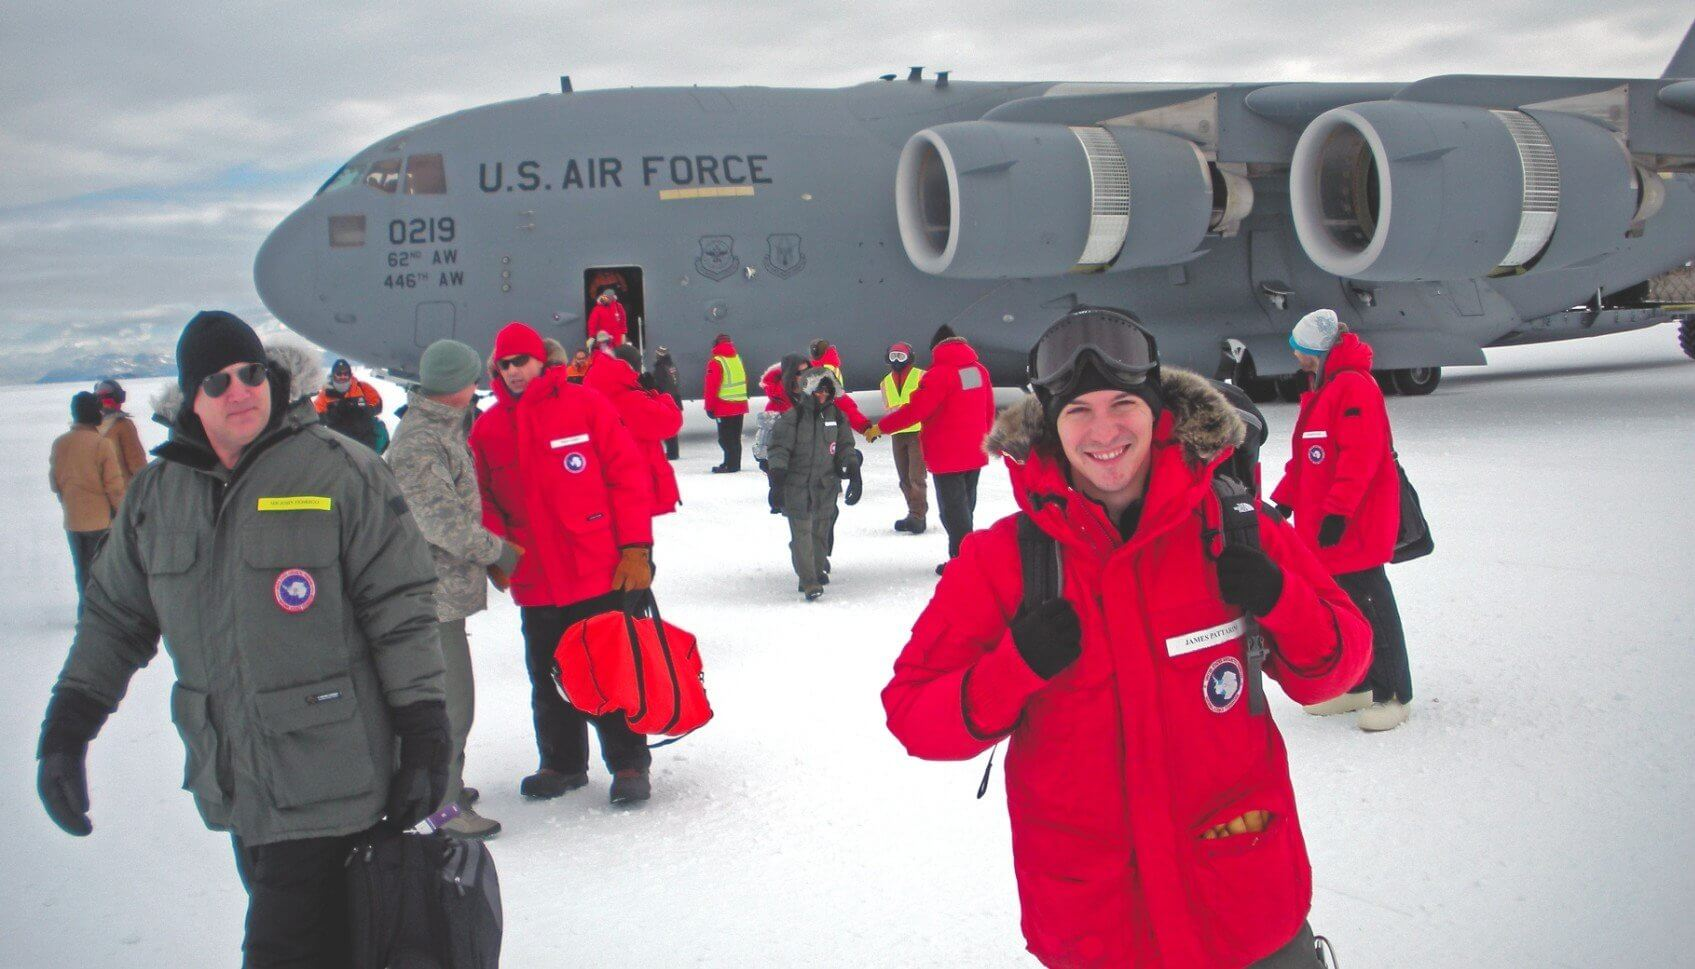 James Pattarini, M.D., MPH (right) originally from Buffalo, New York, doesn't seem too deterred by the cold after touching down in Antarctica. (Photo provided by James Pattarini)